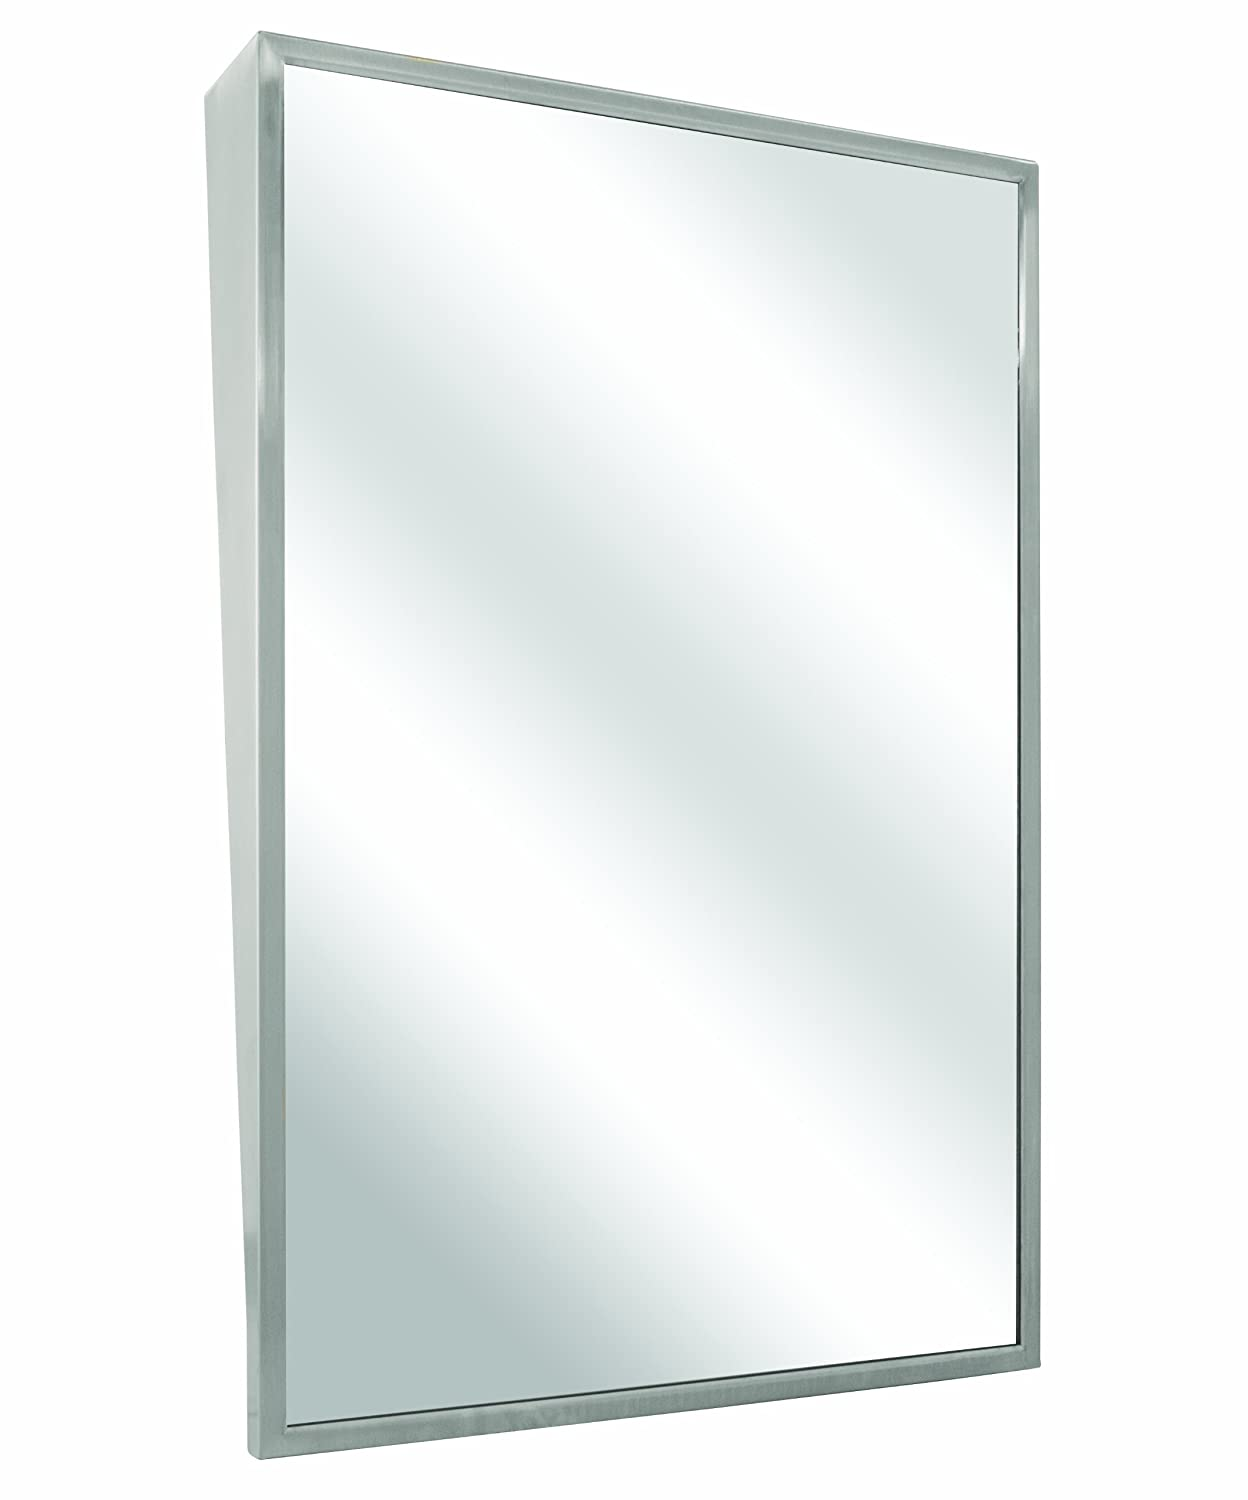 Bradley 740 018360 Float Glass Fixed Tilt Mirror With Welded Corners 18 Width X 36 Height Wall Mounted Mirrors Amazon Industrial Scientific